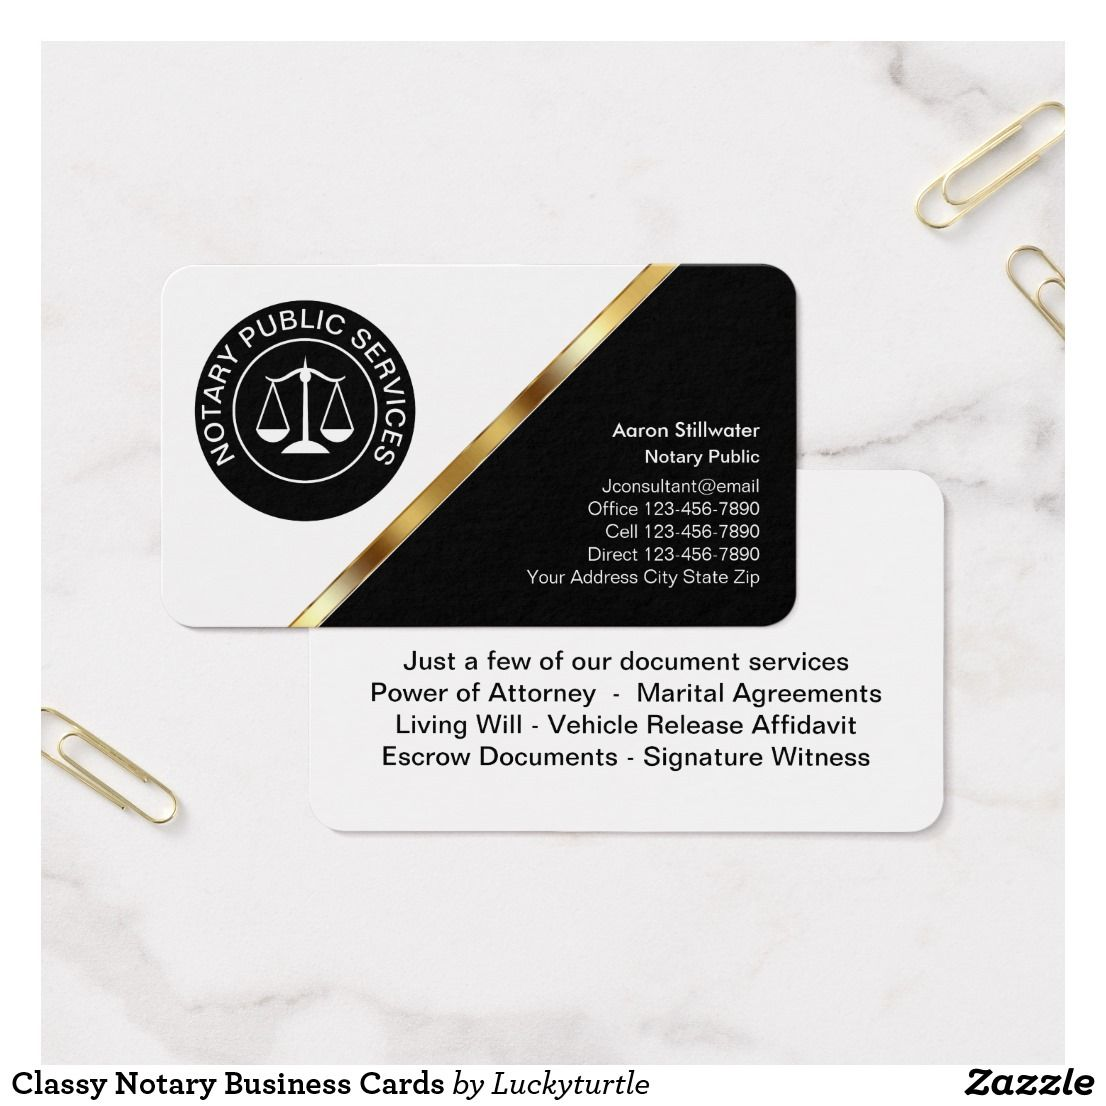 Classy notary business cards business cards